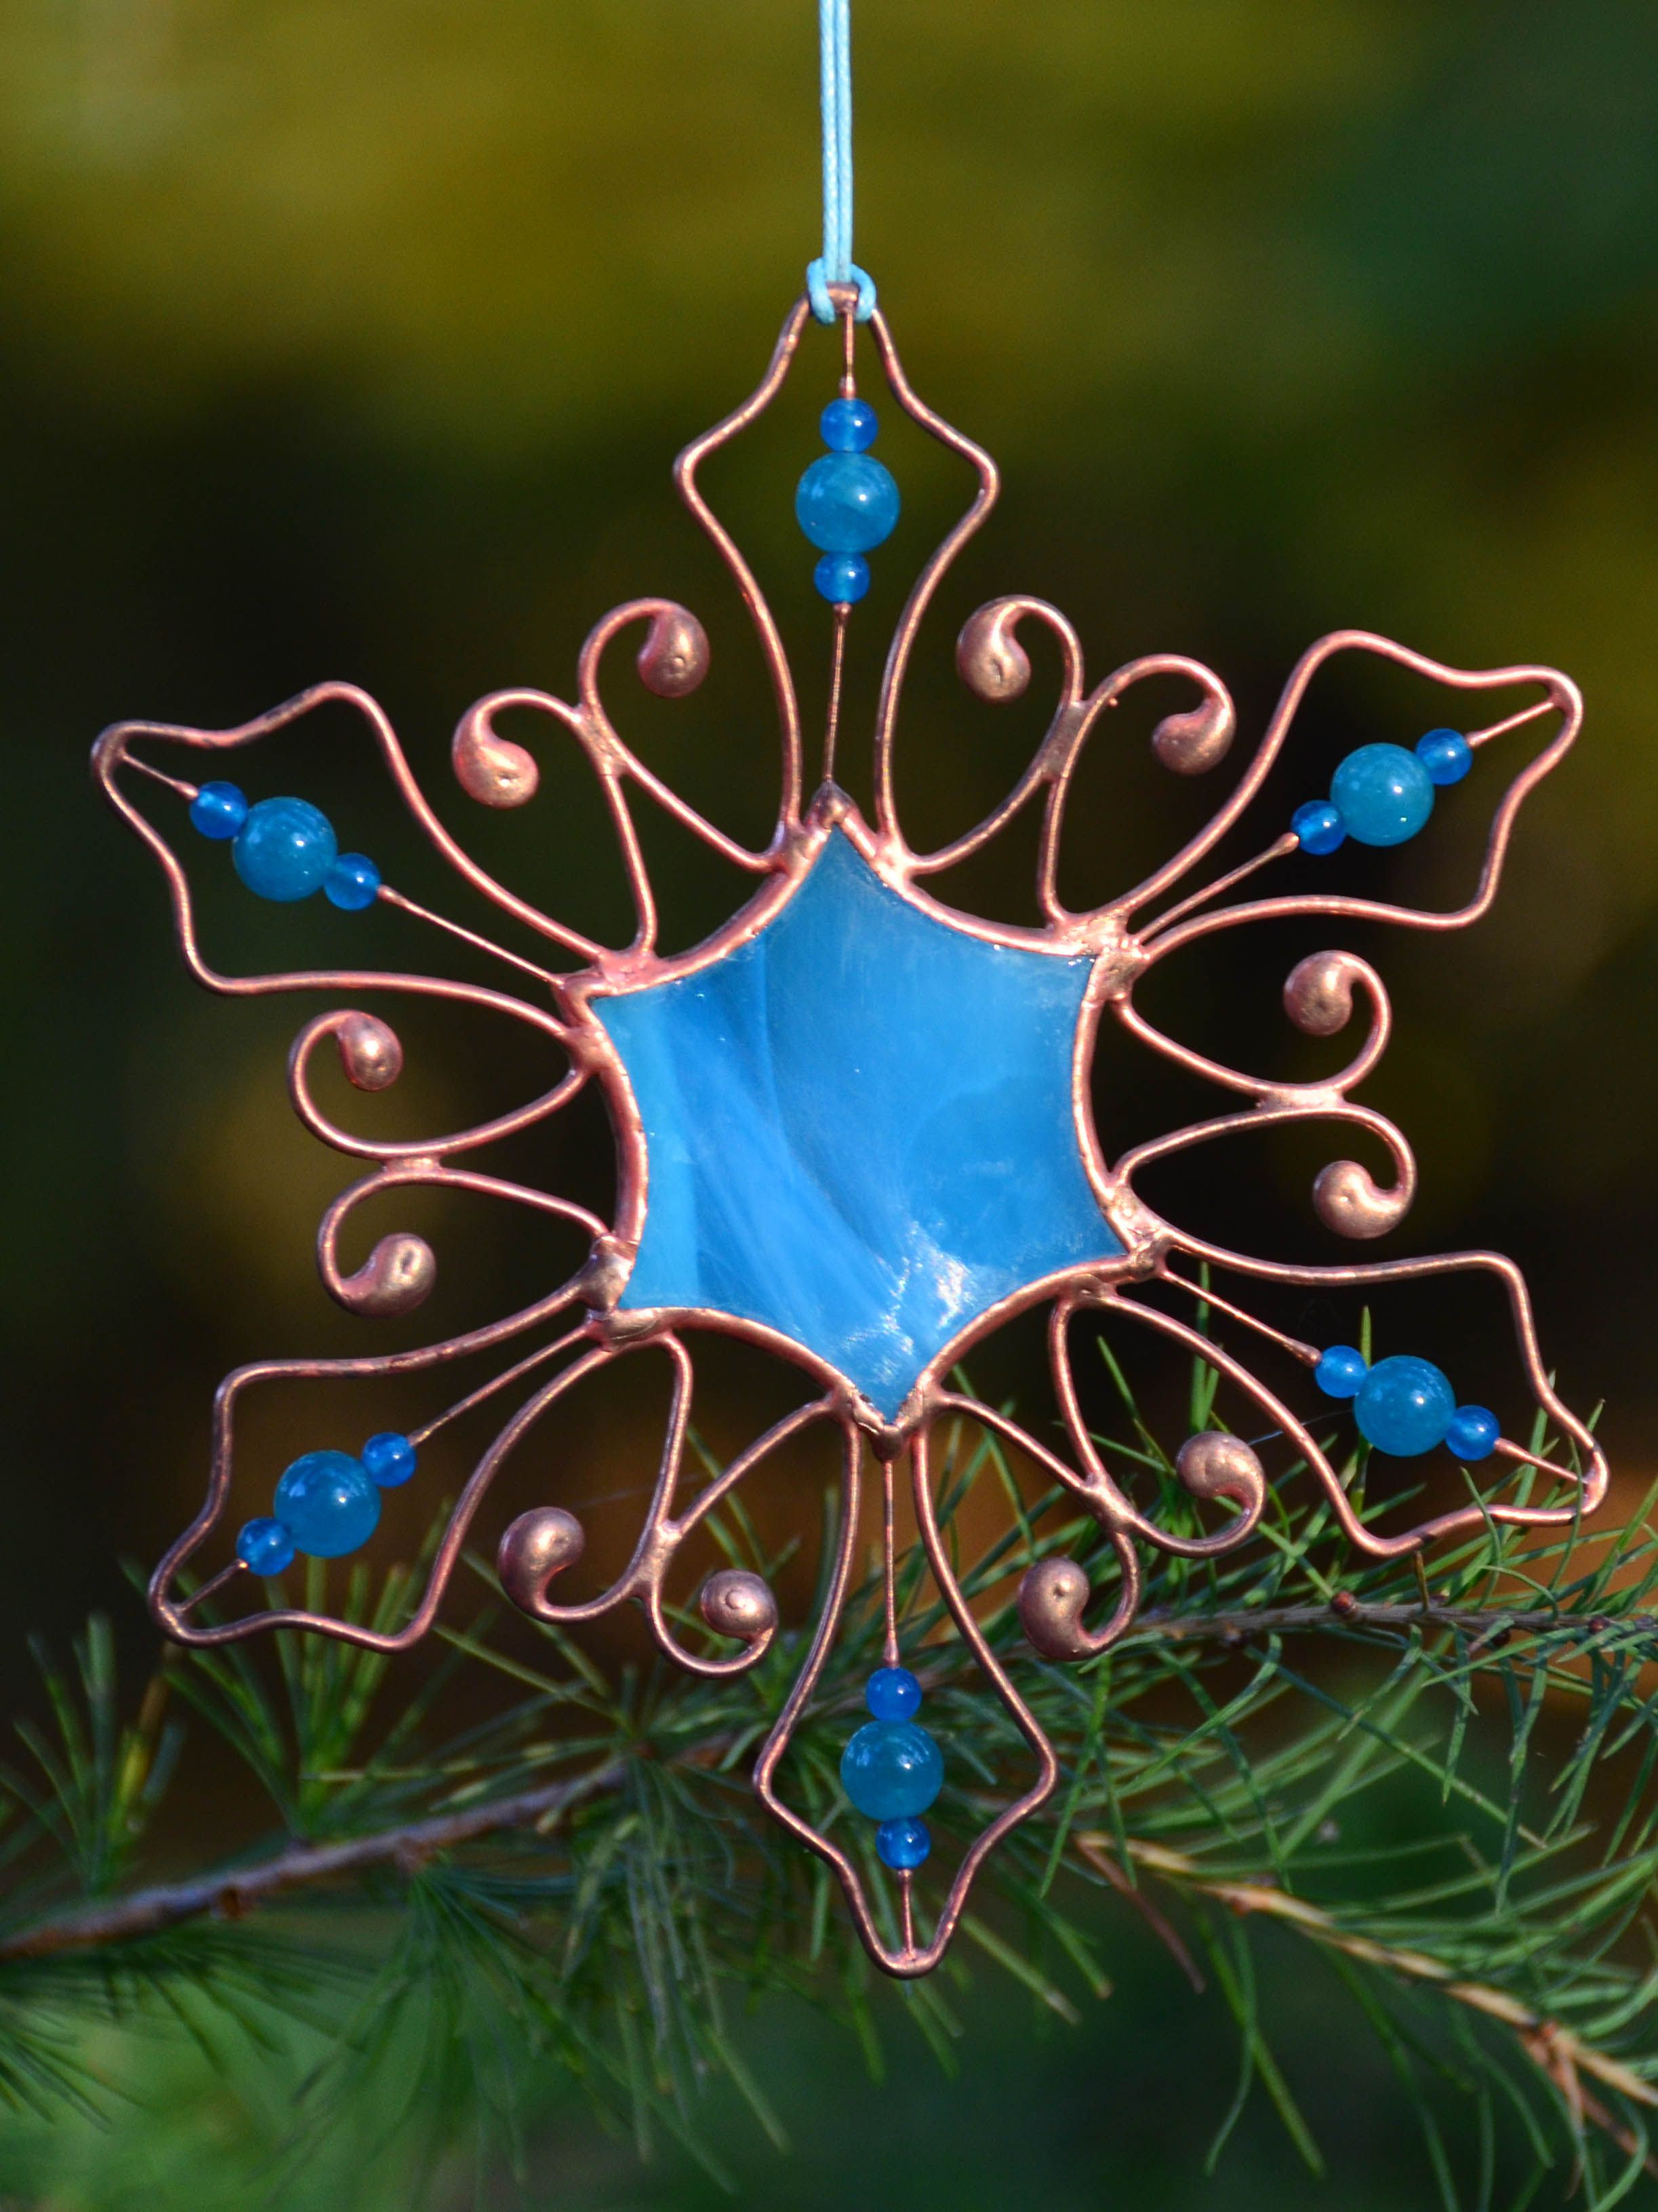 Christmas Suncatcher Snowflake Stained Glass Ornaments Etsy In 2021 Stained Glass Ornaments Stained Glass Christmas Stained Glass Gifts